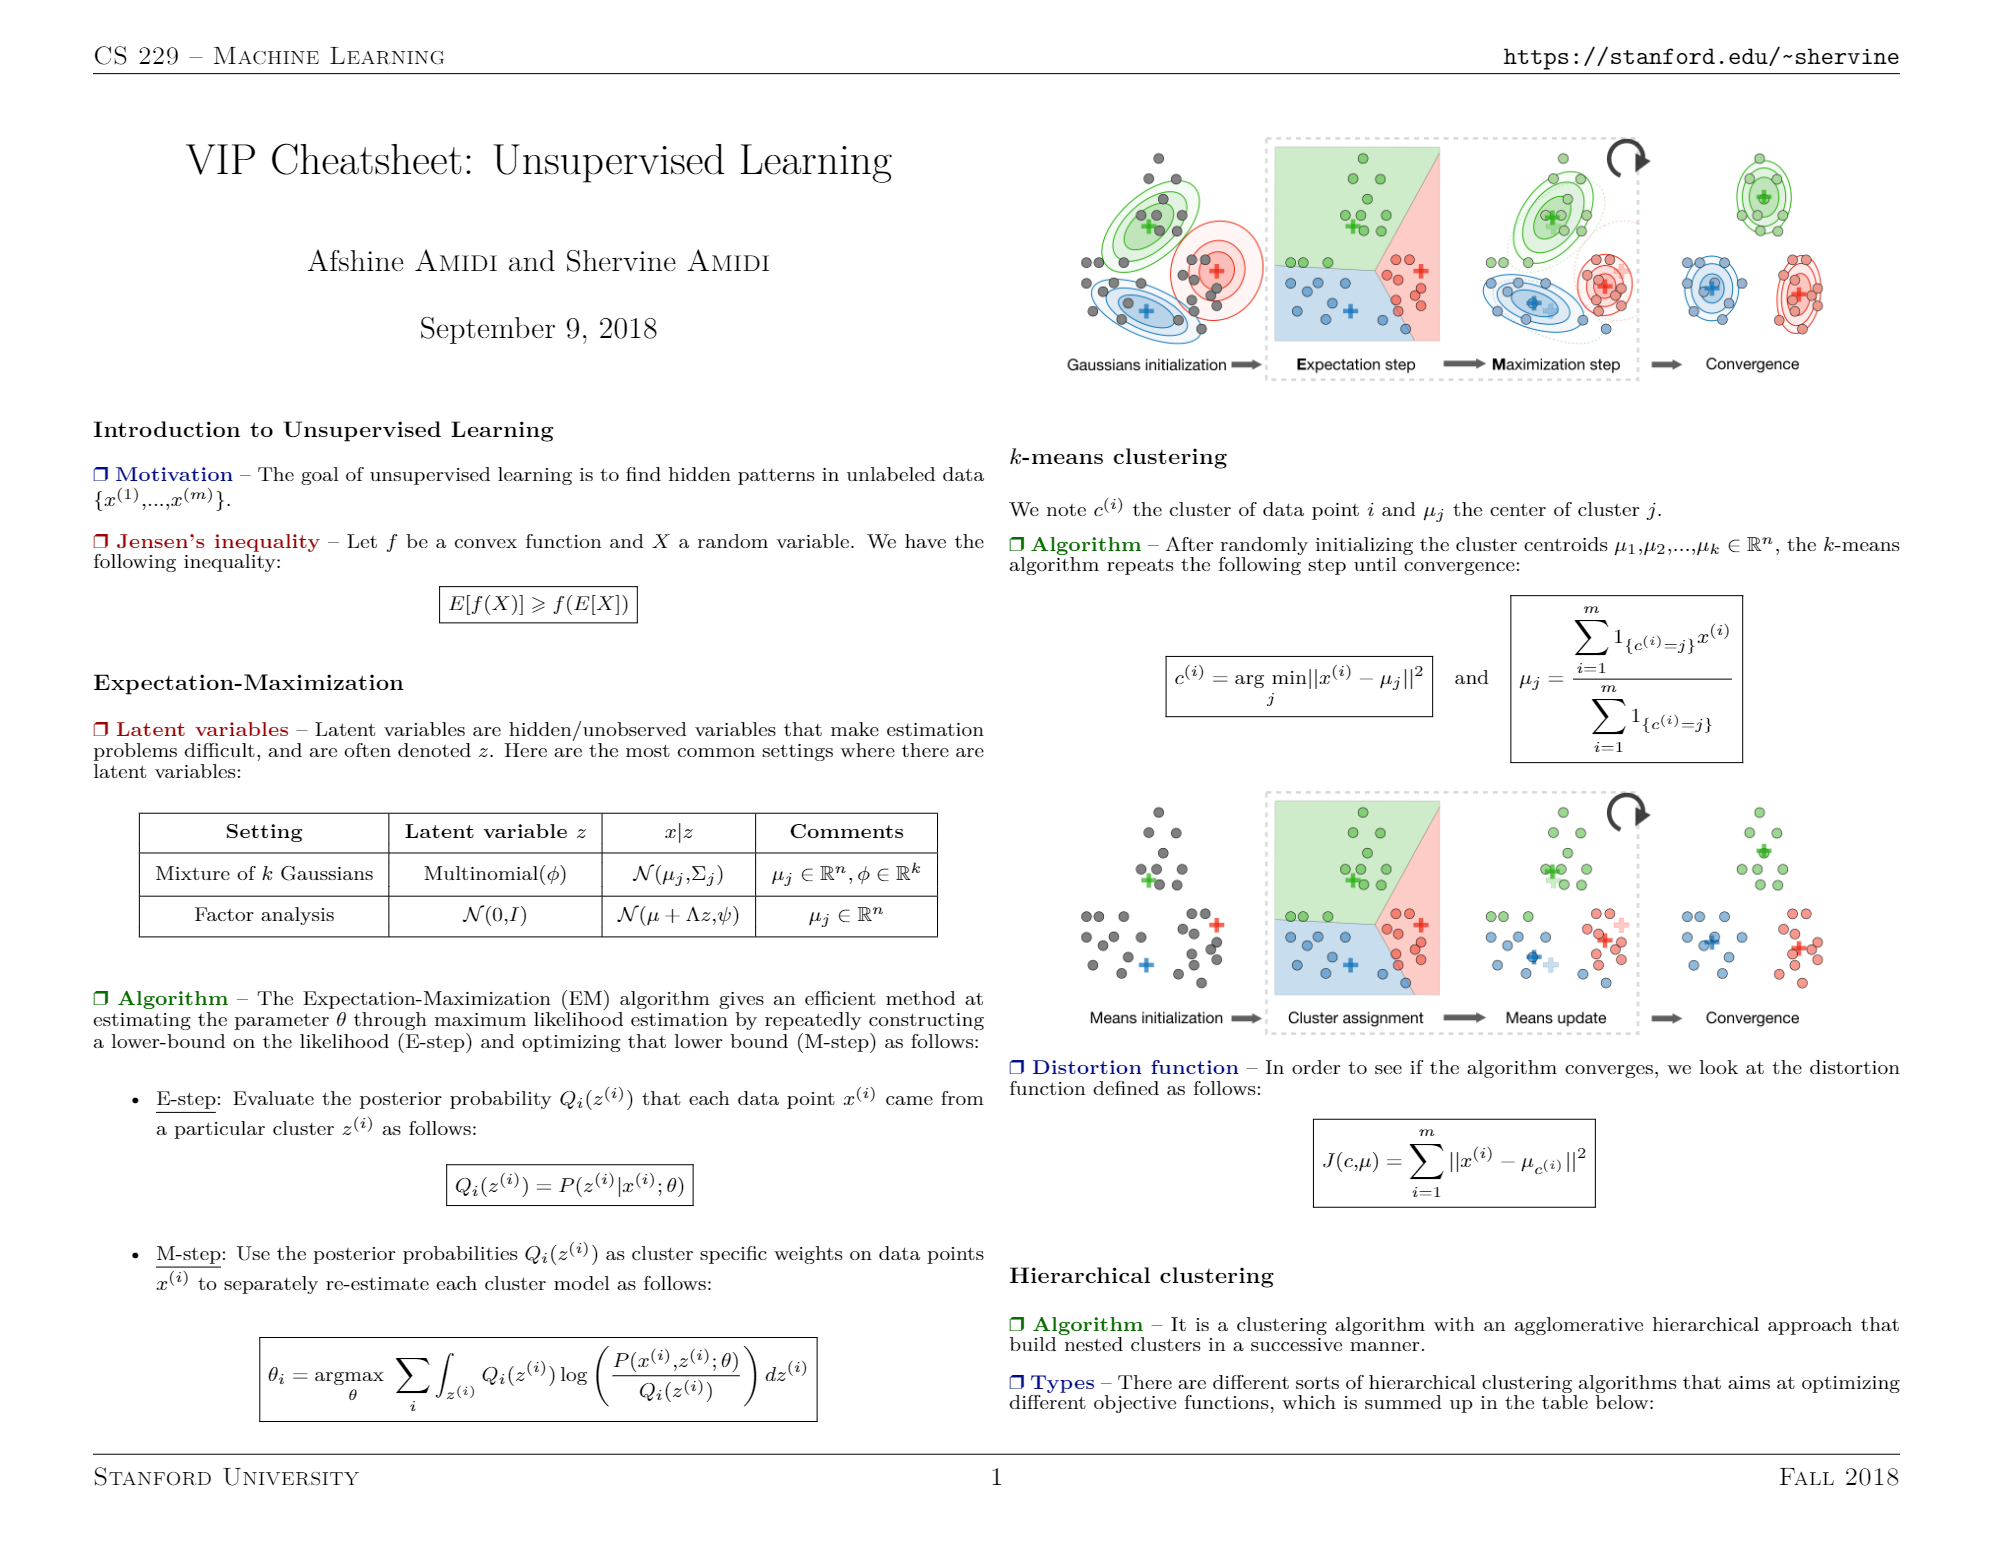 VIP Cheat Sheets - Unsupervised Learning by Stanford's CS 229 Students